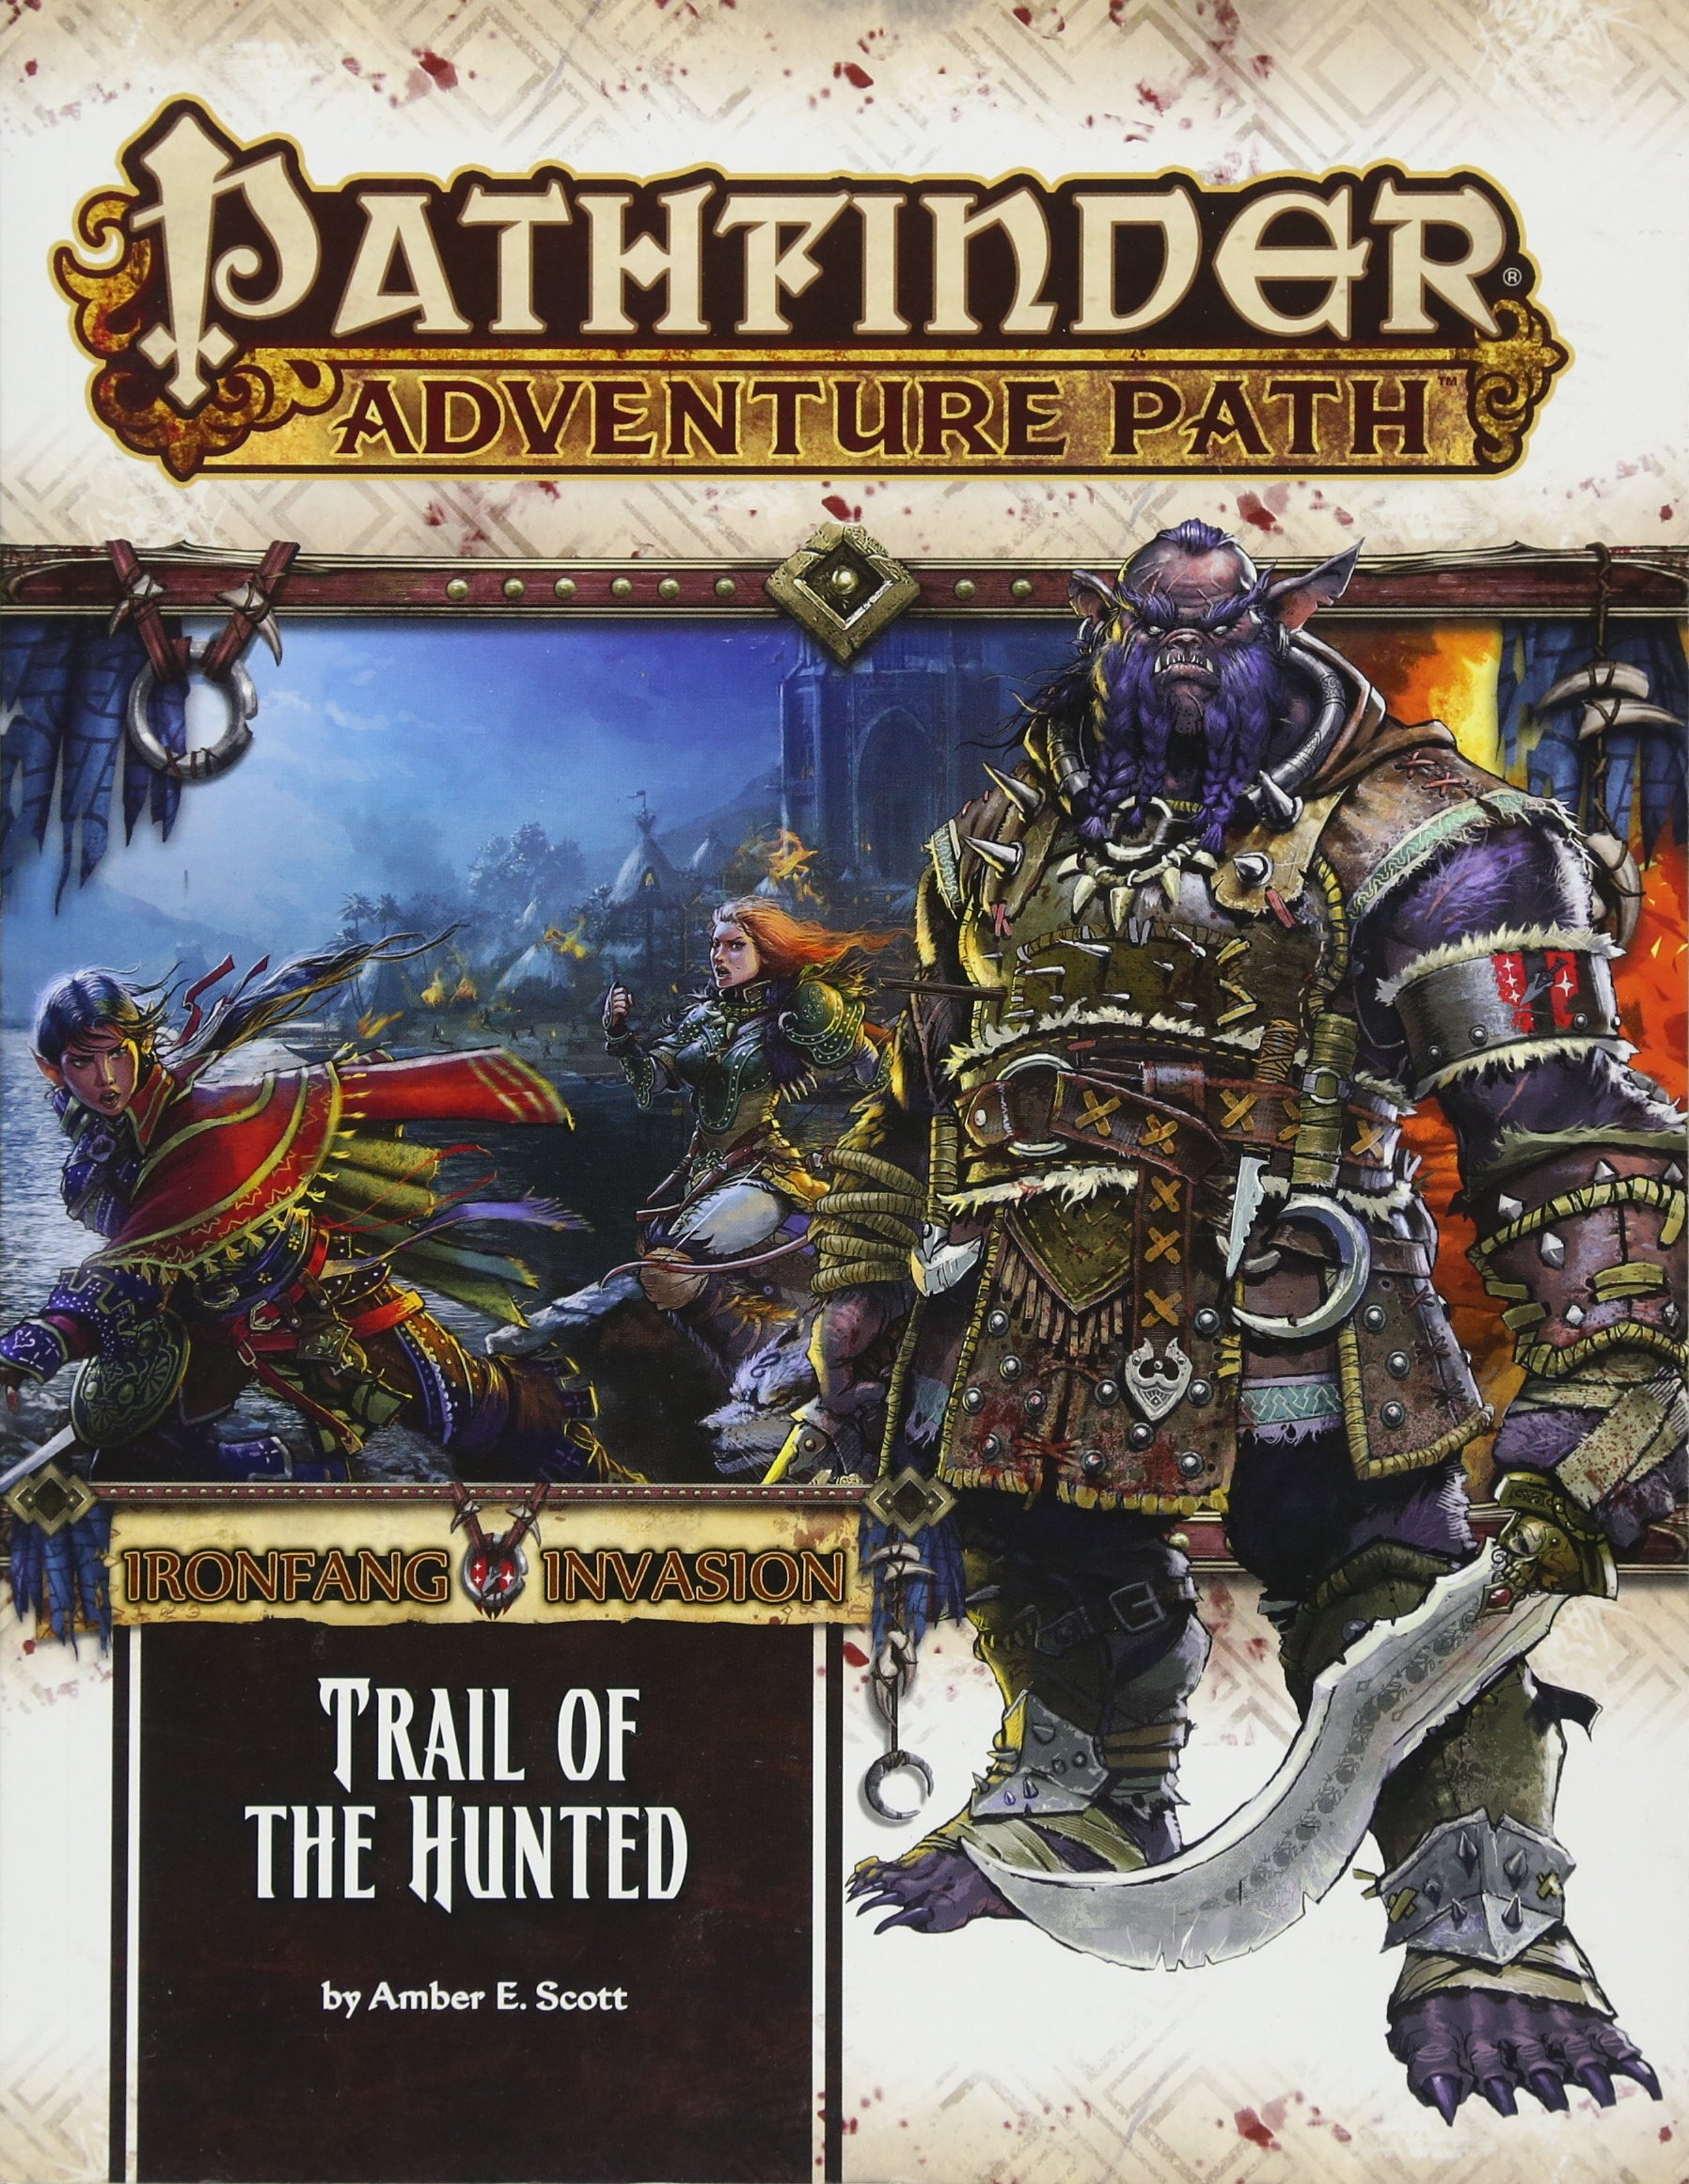 Pathfinder Adventure Path: Ironfang Invasion Part 1 of 6-Trail of the Hunted ebook